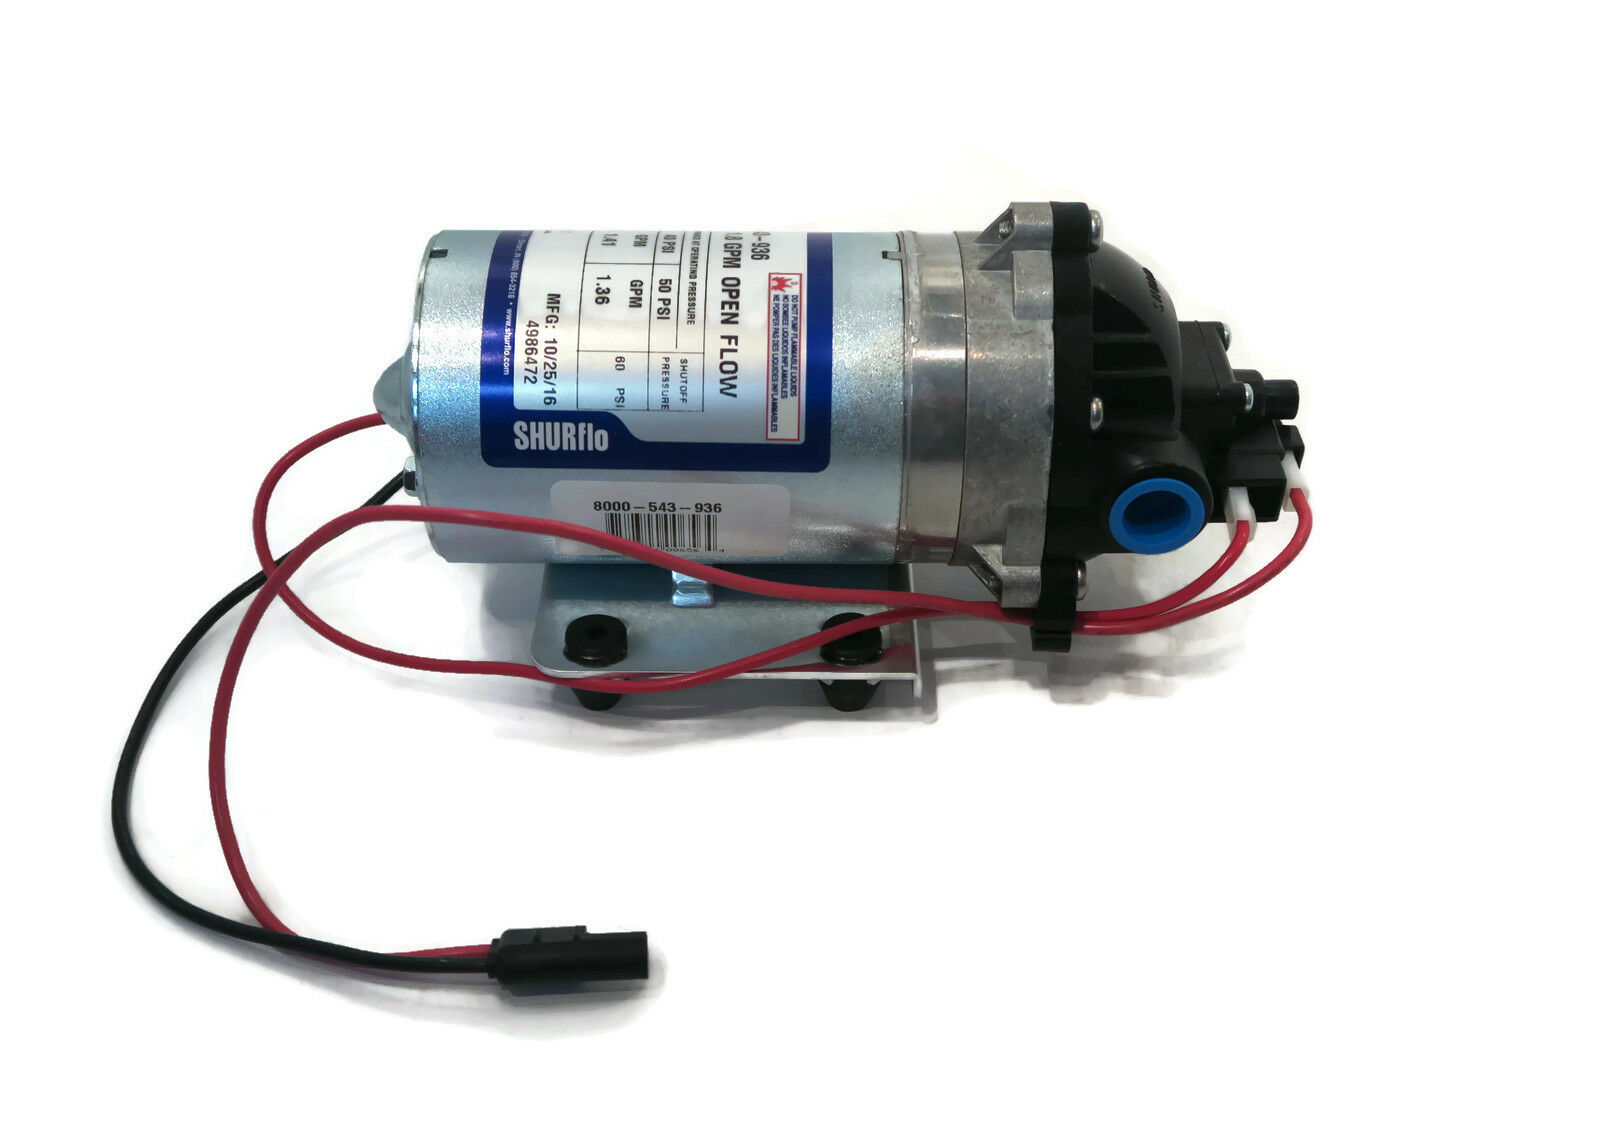 New SHURflo 12v VOLT Demand WATER PUMP w/ WIRING HARNESS Camper RV Trailer  Boat